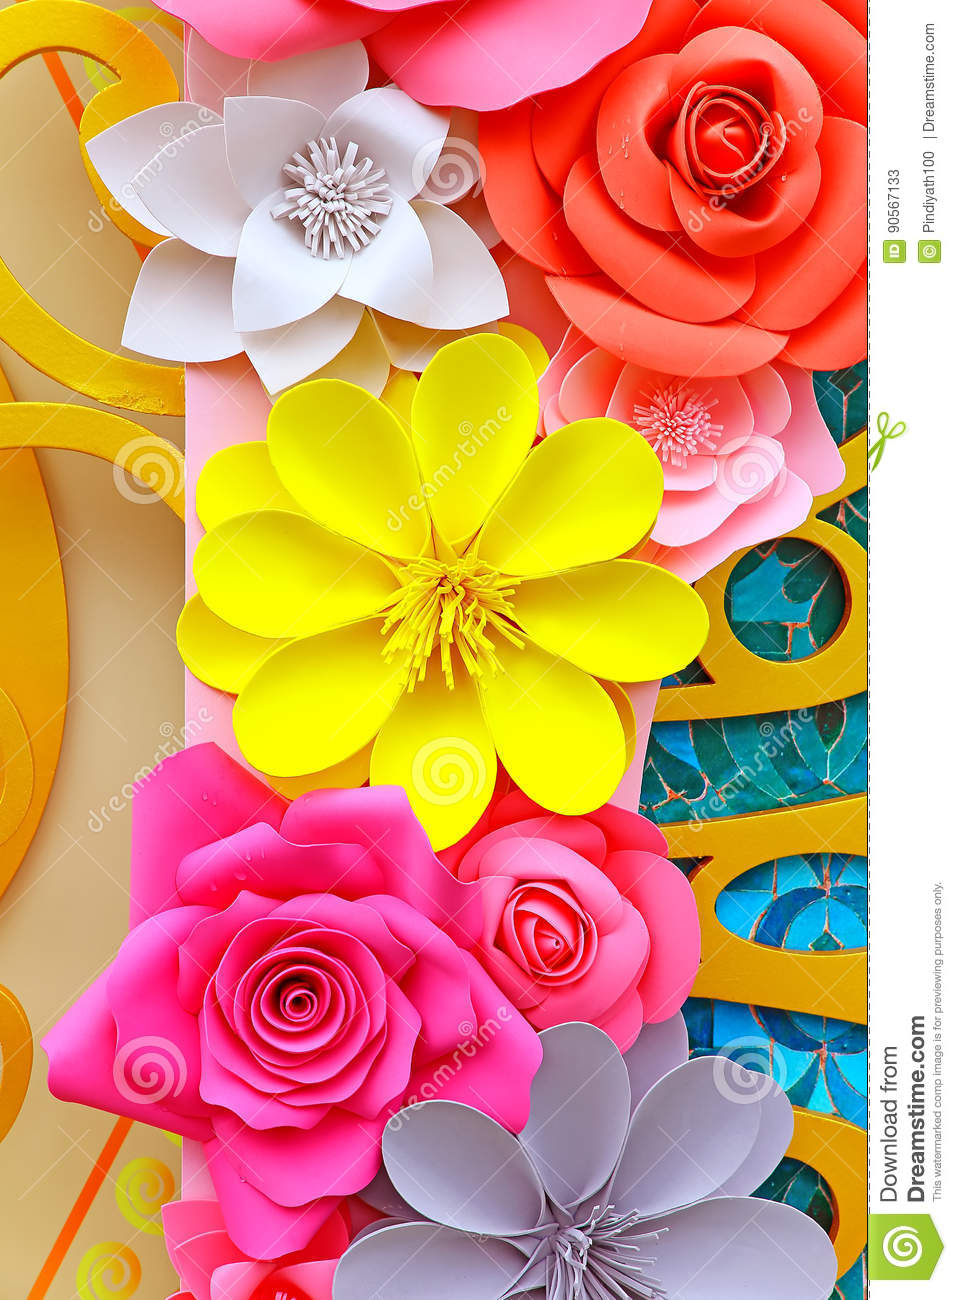 Paper Flowers Decorative Background Stock Image Image Of